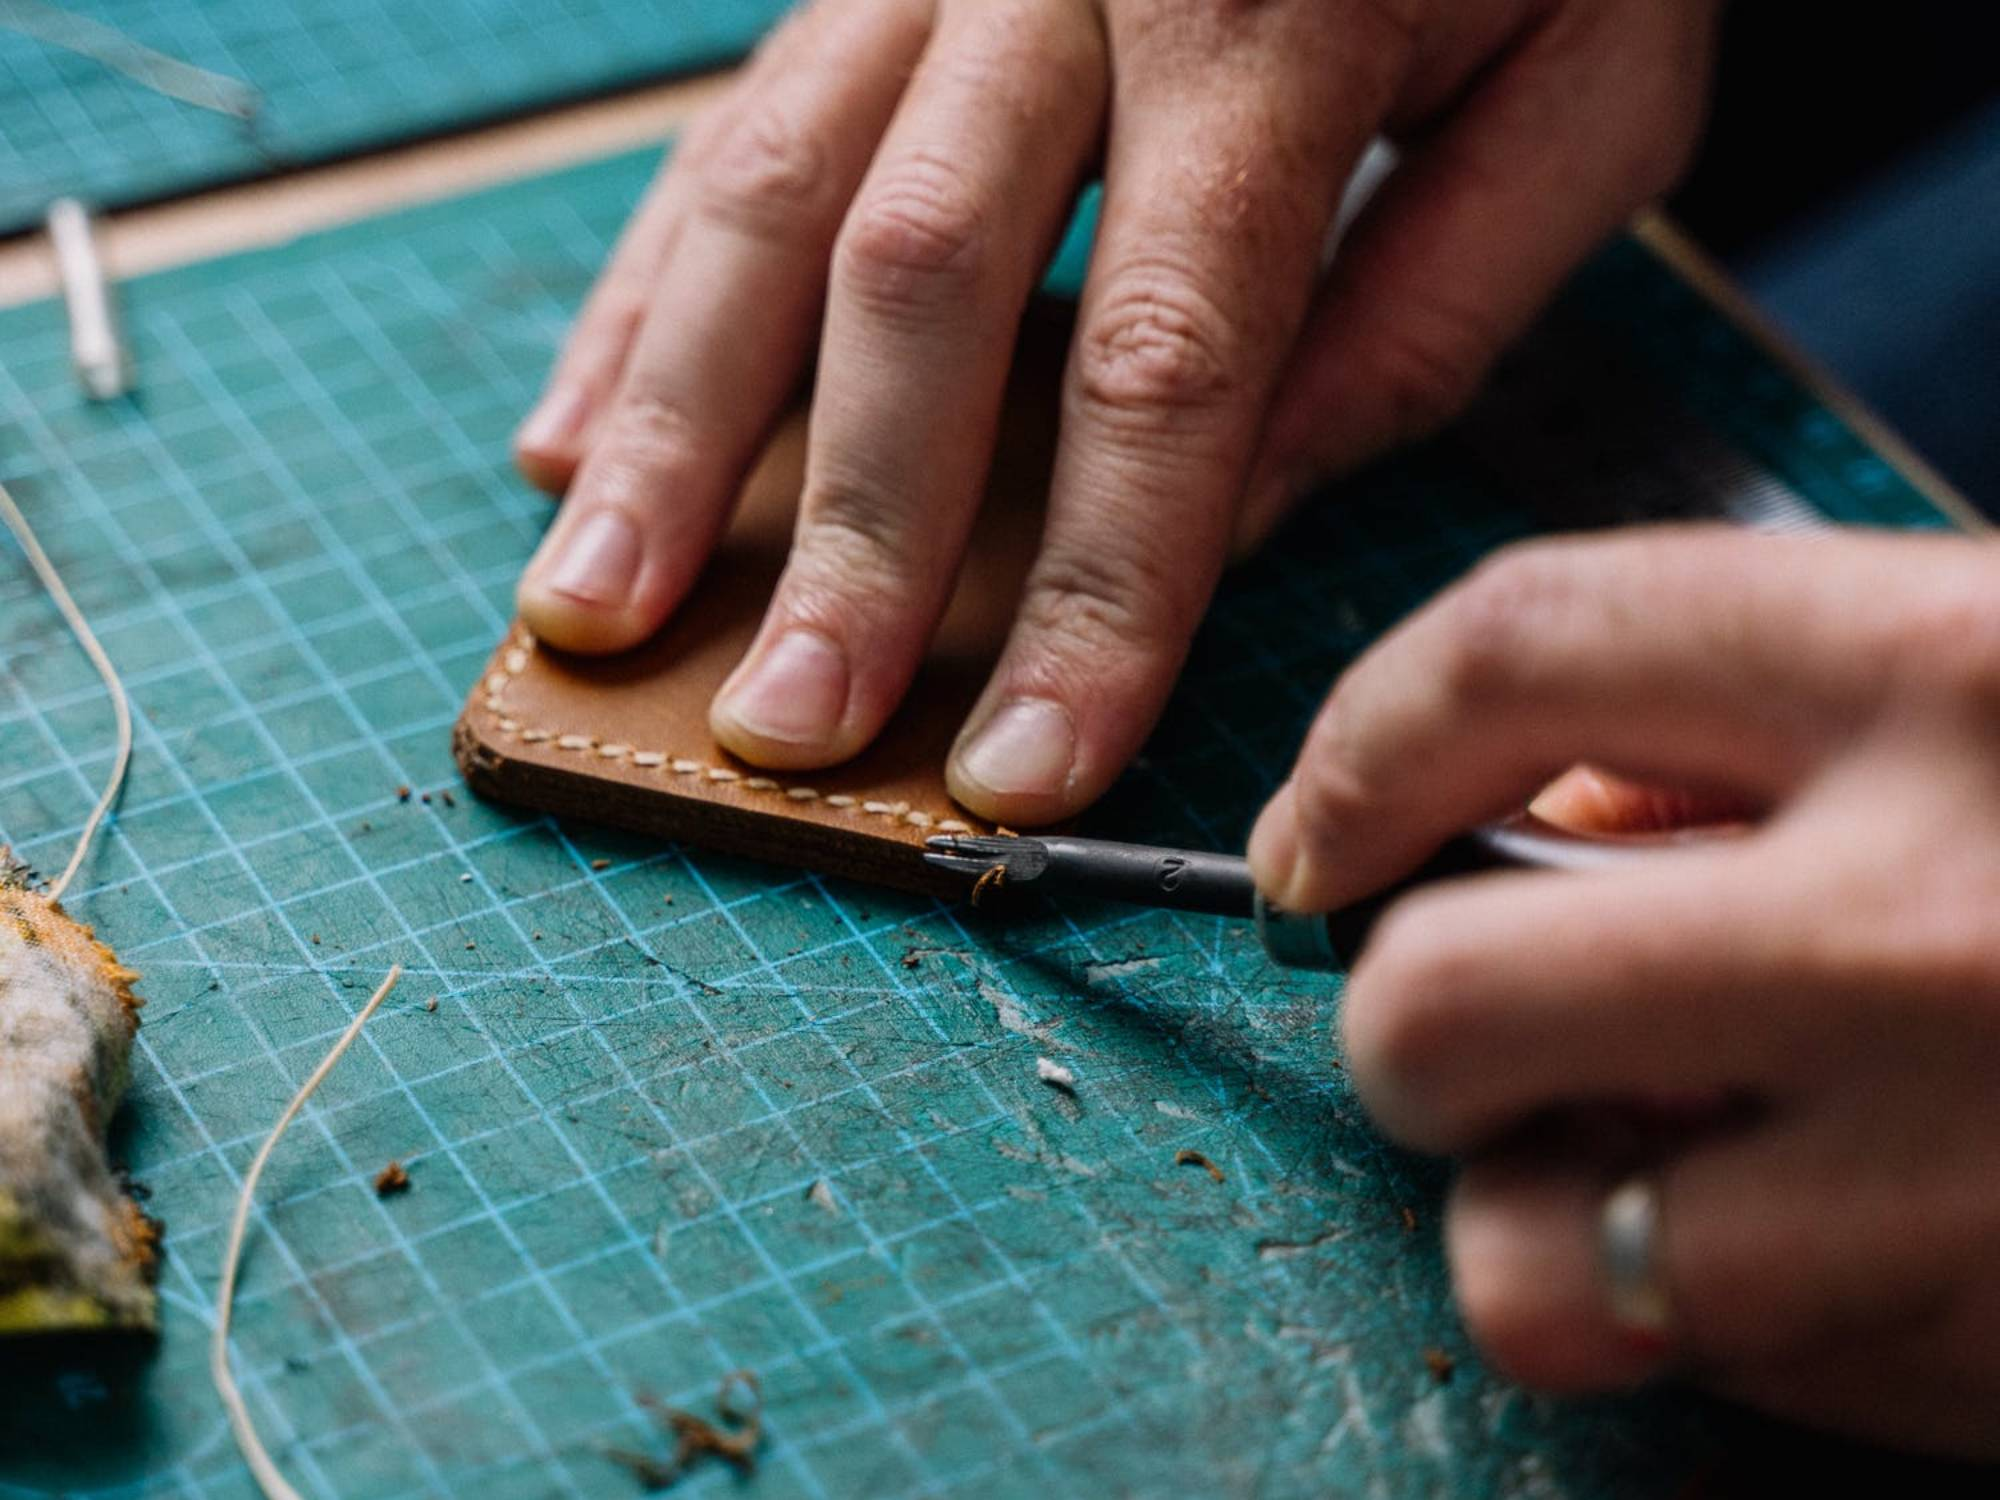 Hands working on edging a piece of leatherwork